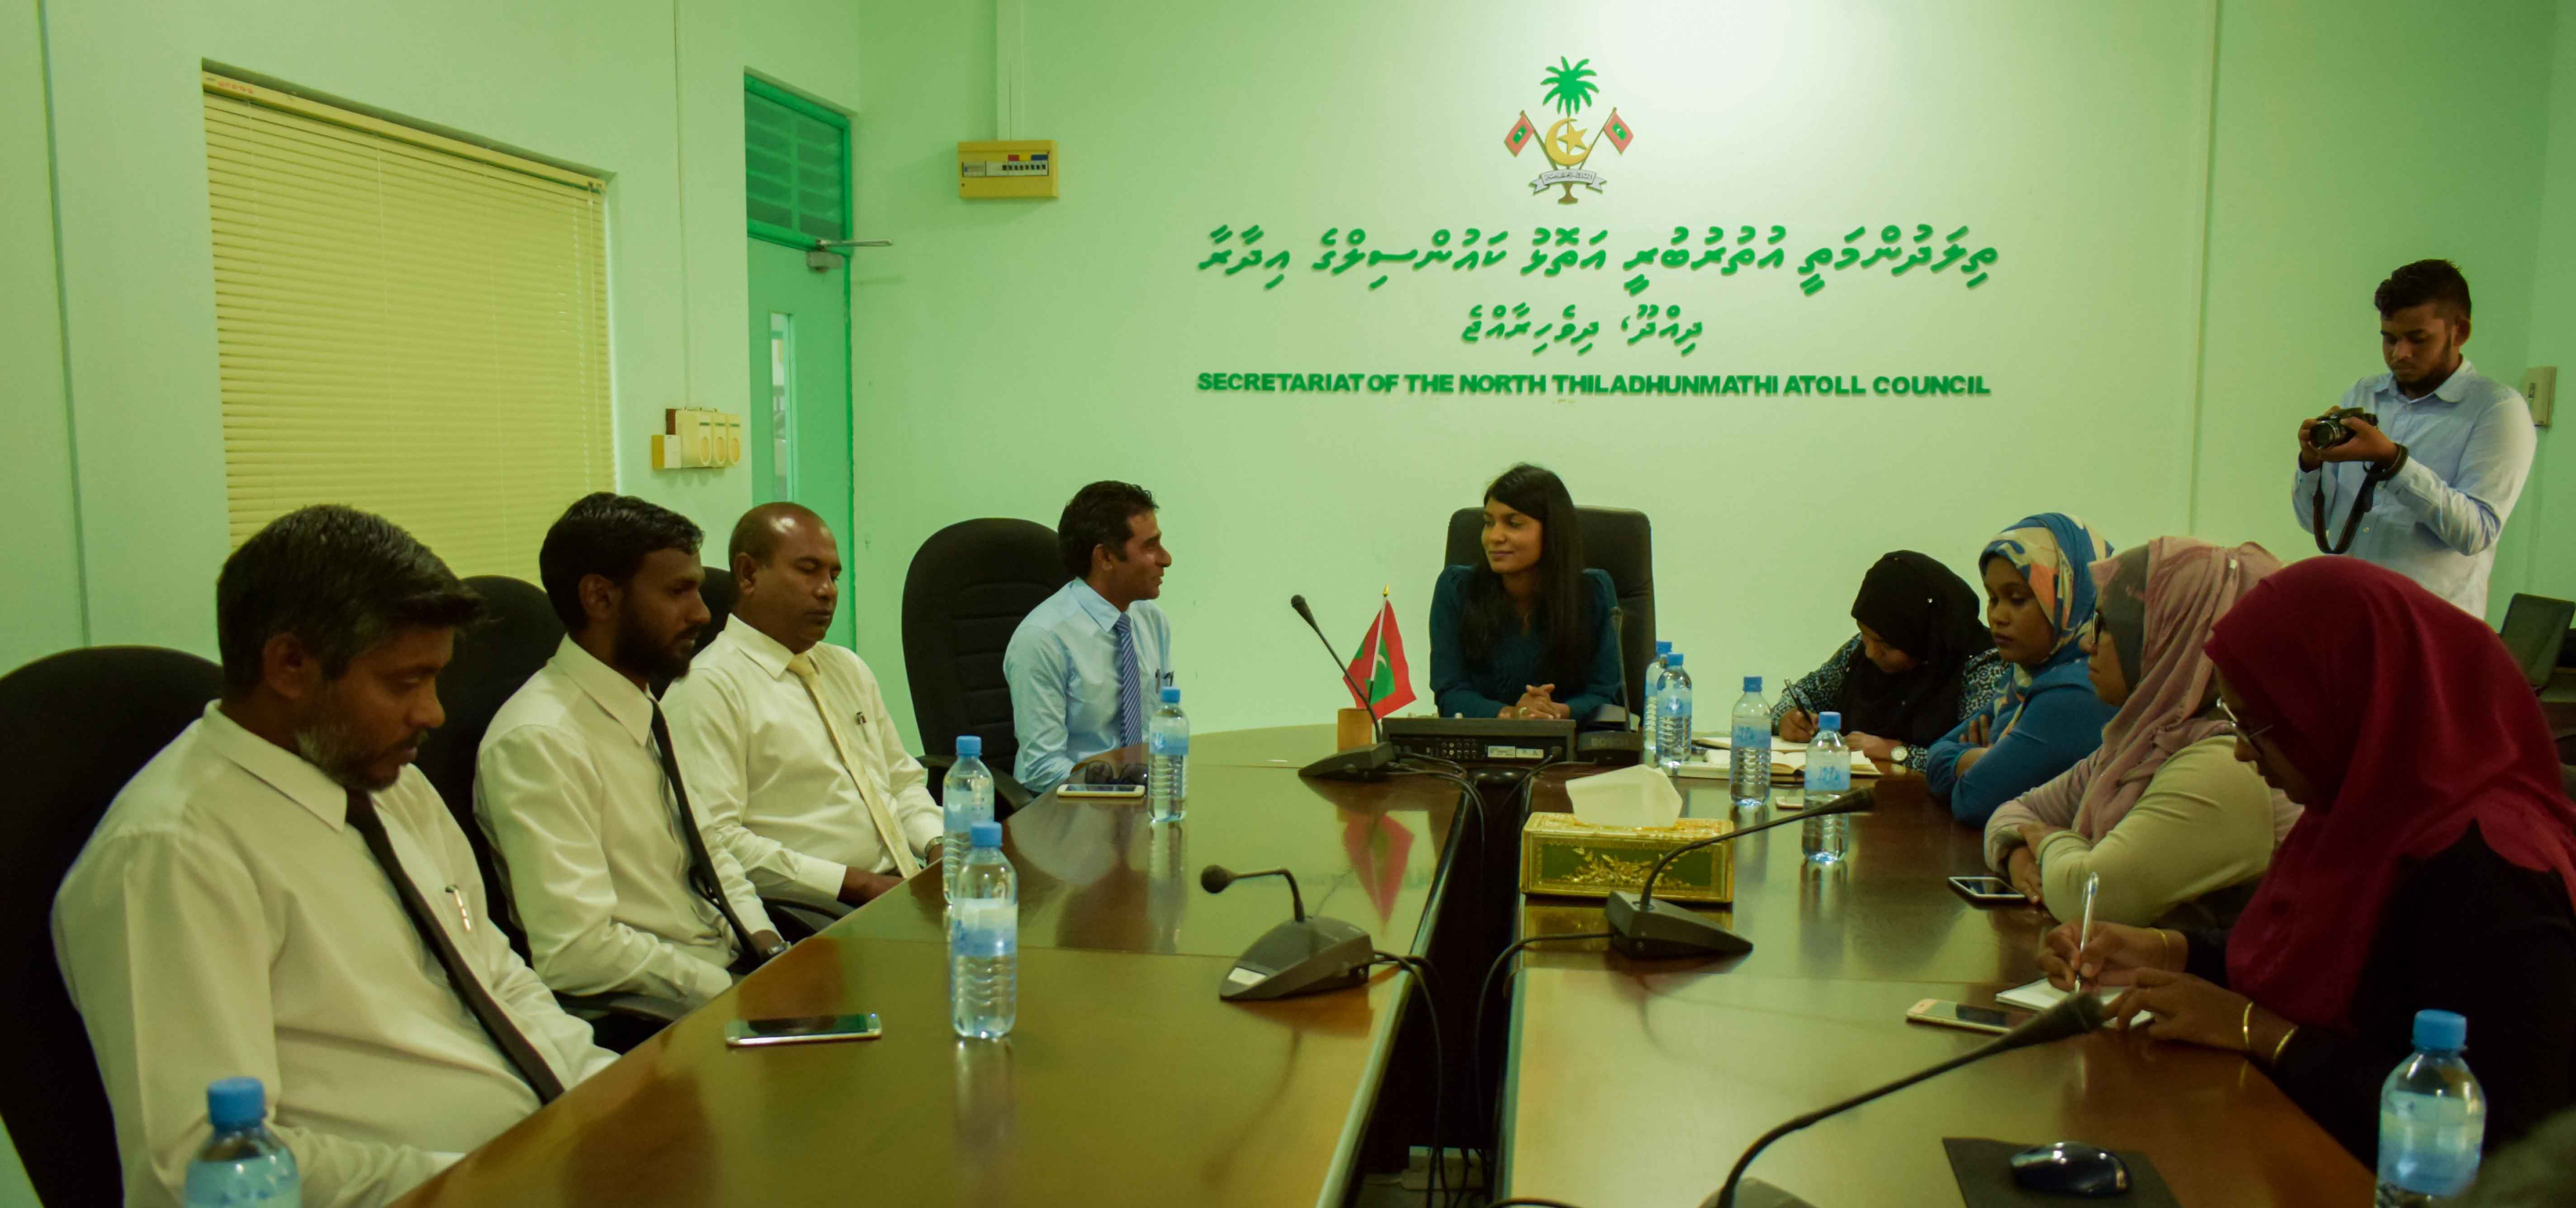 Minister Zenysha's official visit to Ha. Dhidhdhoo